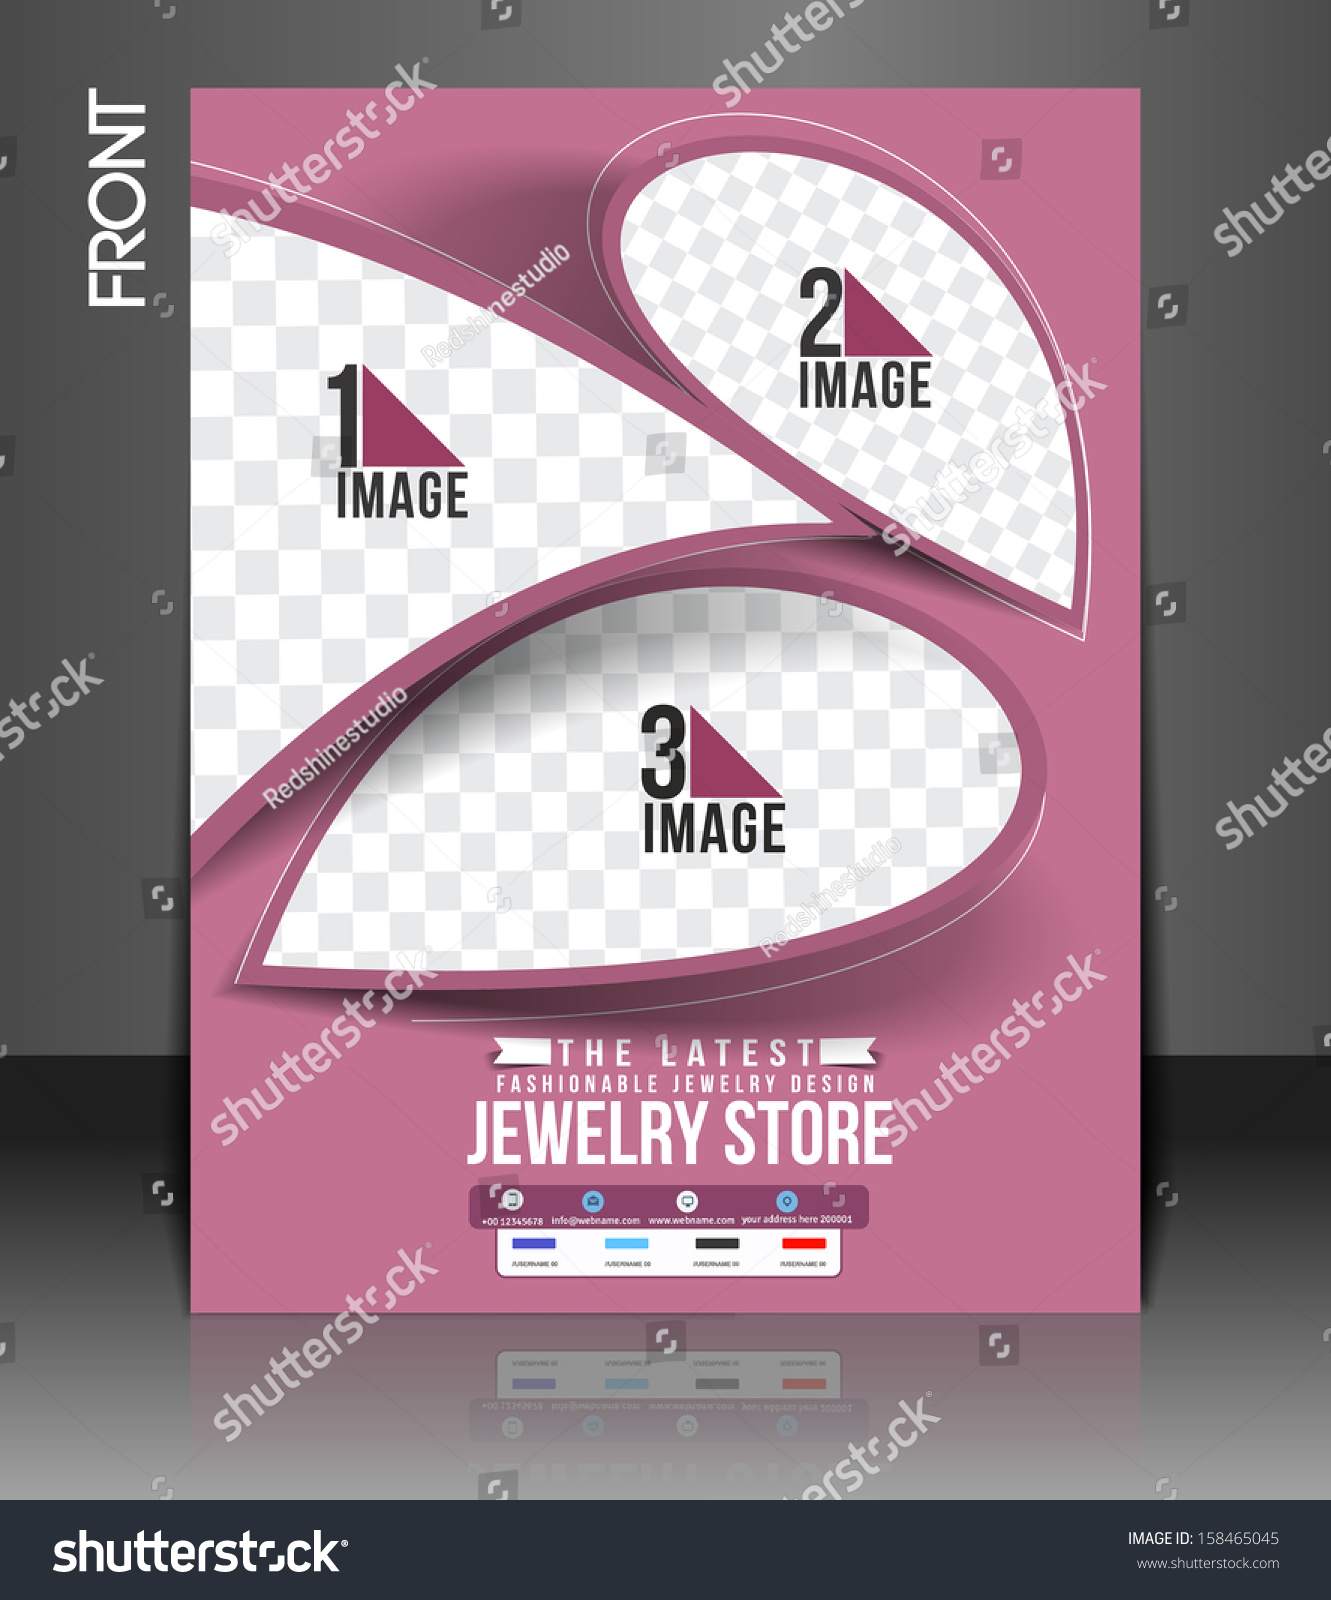 Jewelry Store Flyer & Poster Template Stock Vector Illustration ...